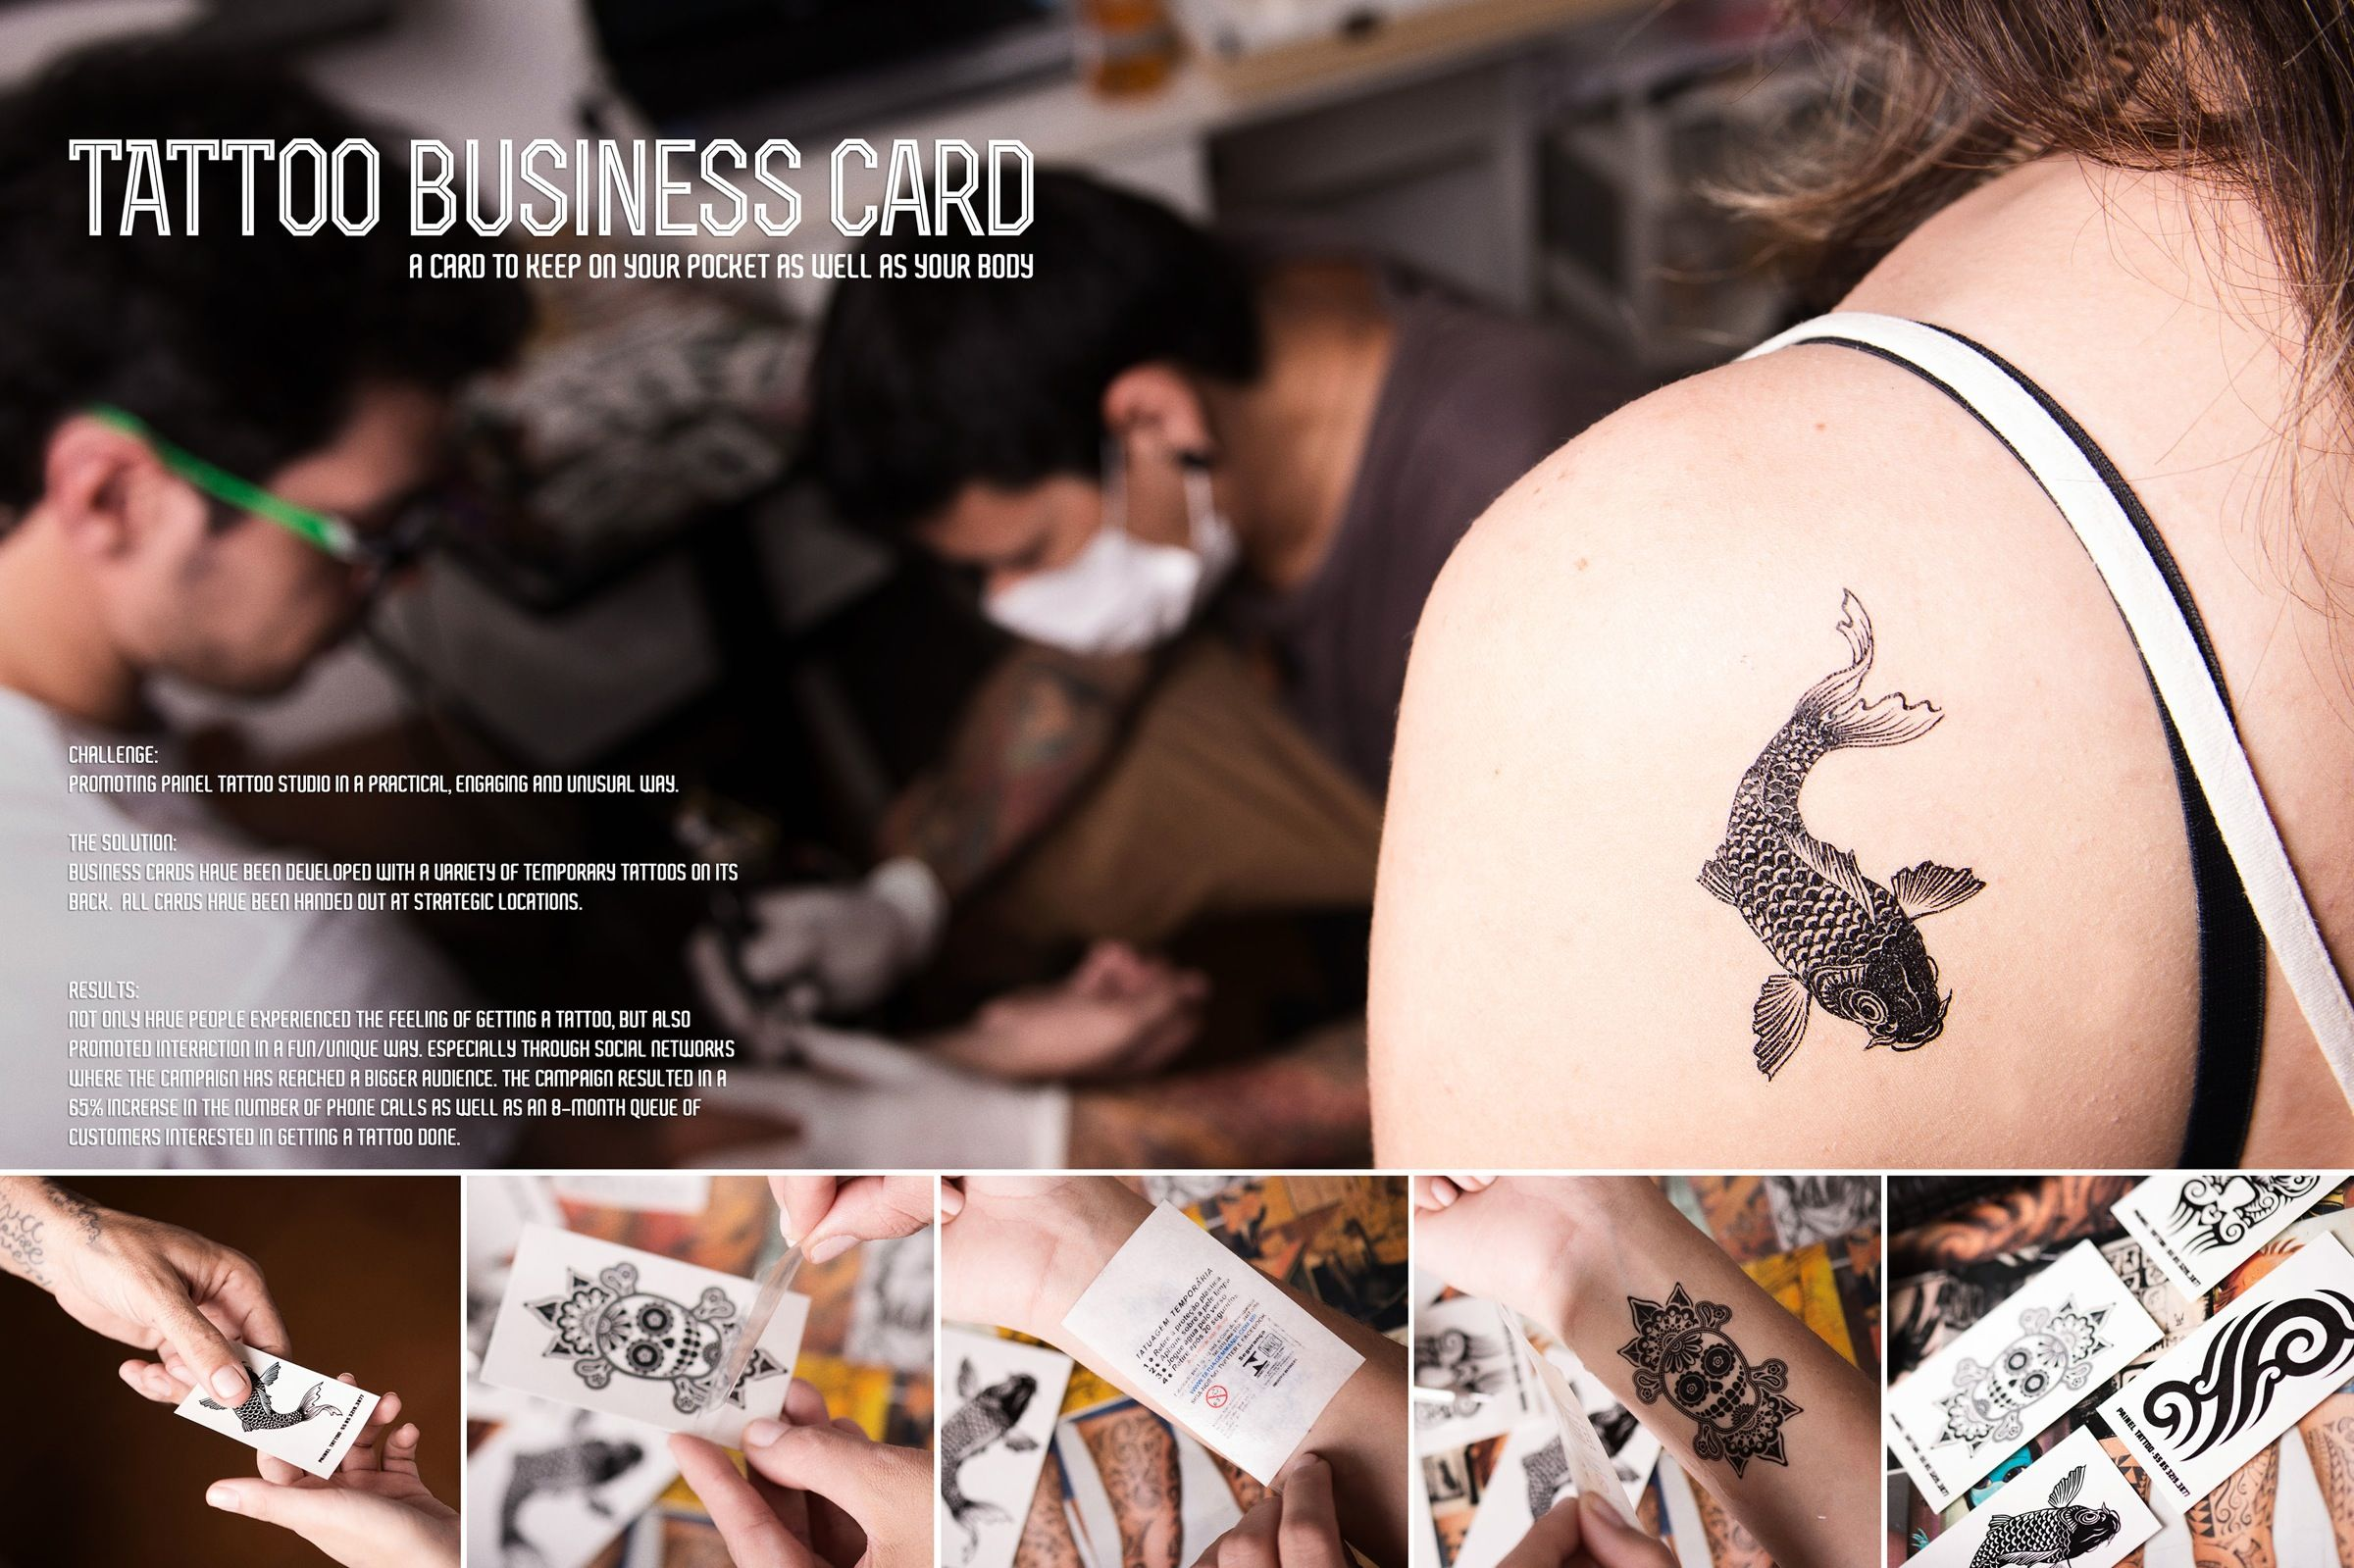 Painel tattoo studio tattoo business card giving customers an painel tattoo studio tattoo business card giving customers an experience like getting a tattoo designed by advertiing agency bolery brazil colourmoves